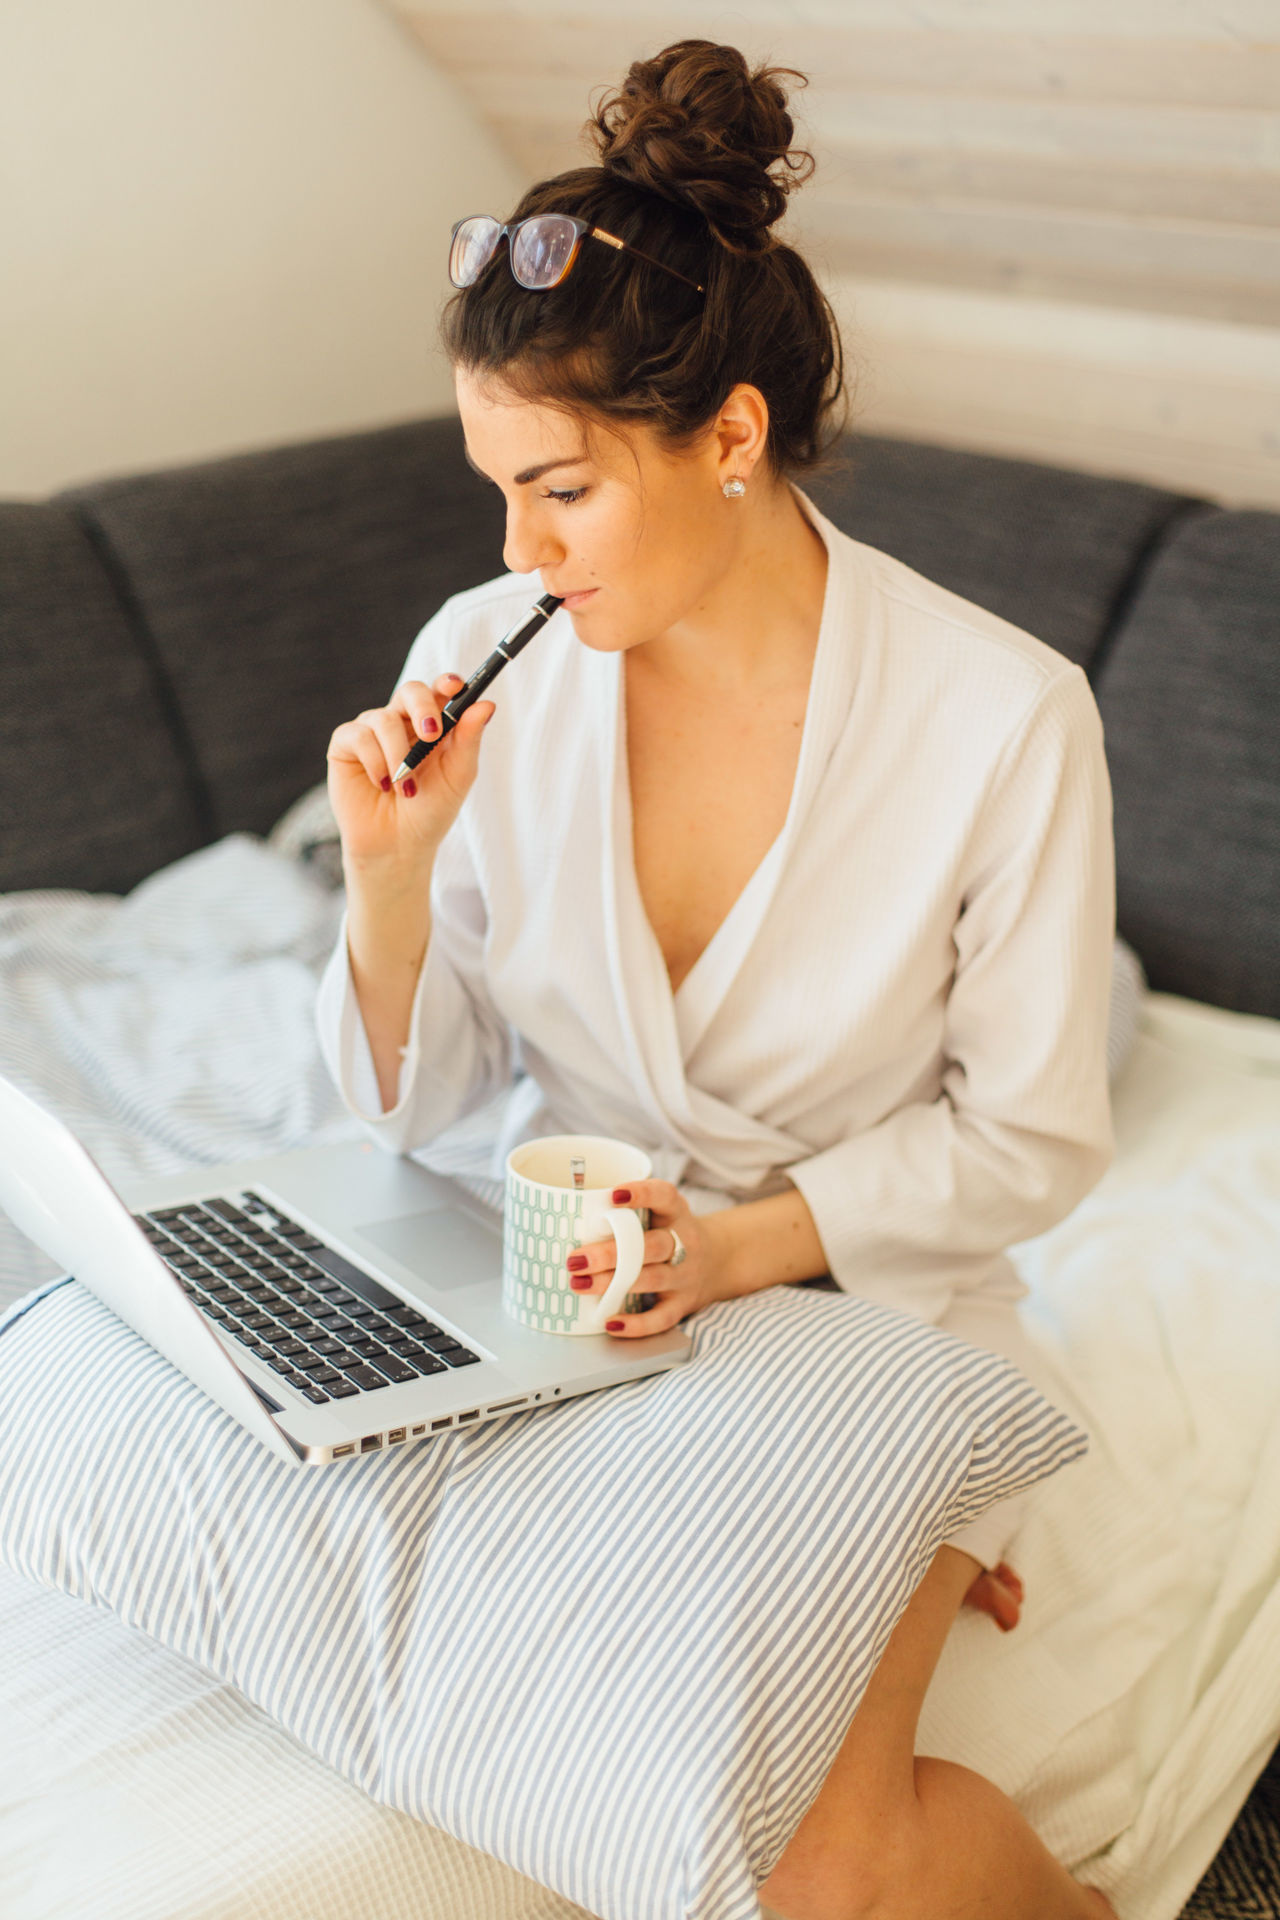 Young woman holding coffee cup using laptop while sitting on bed at home